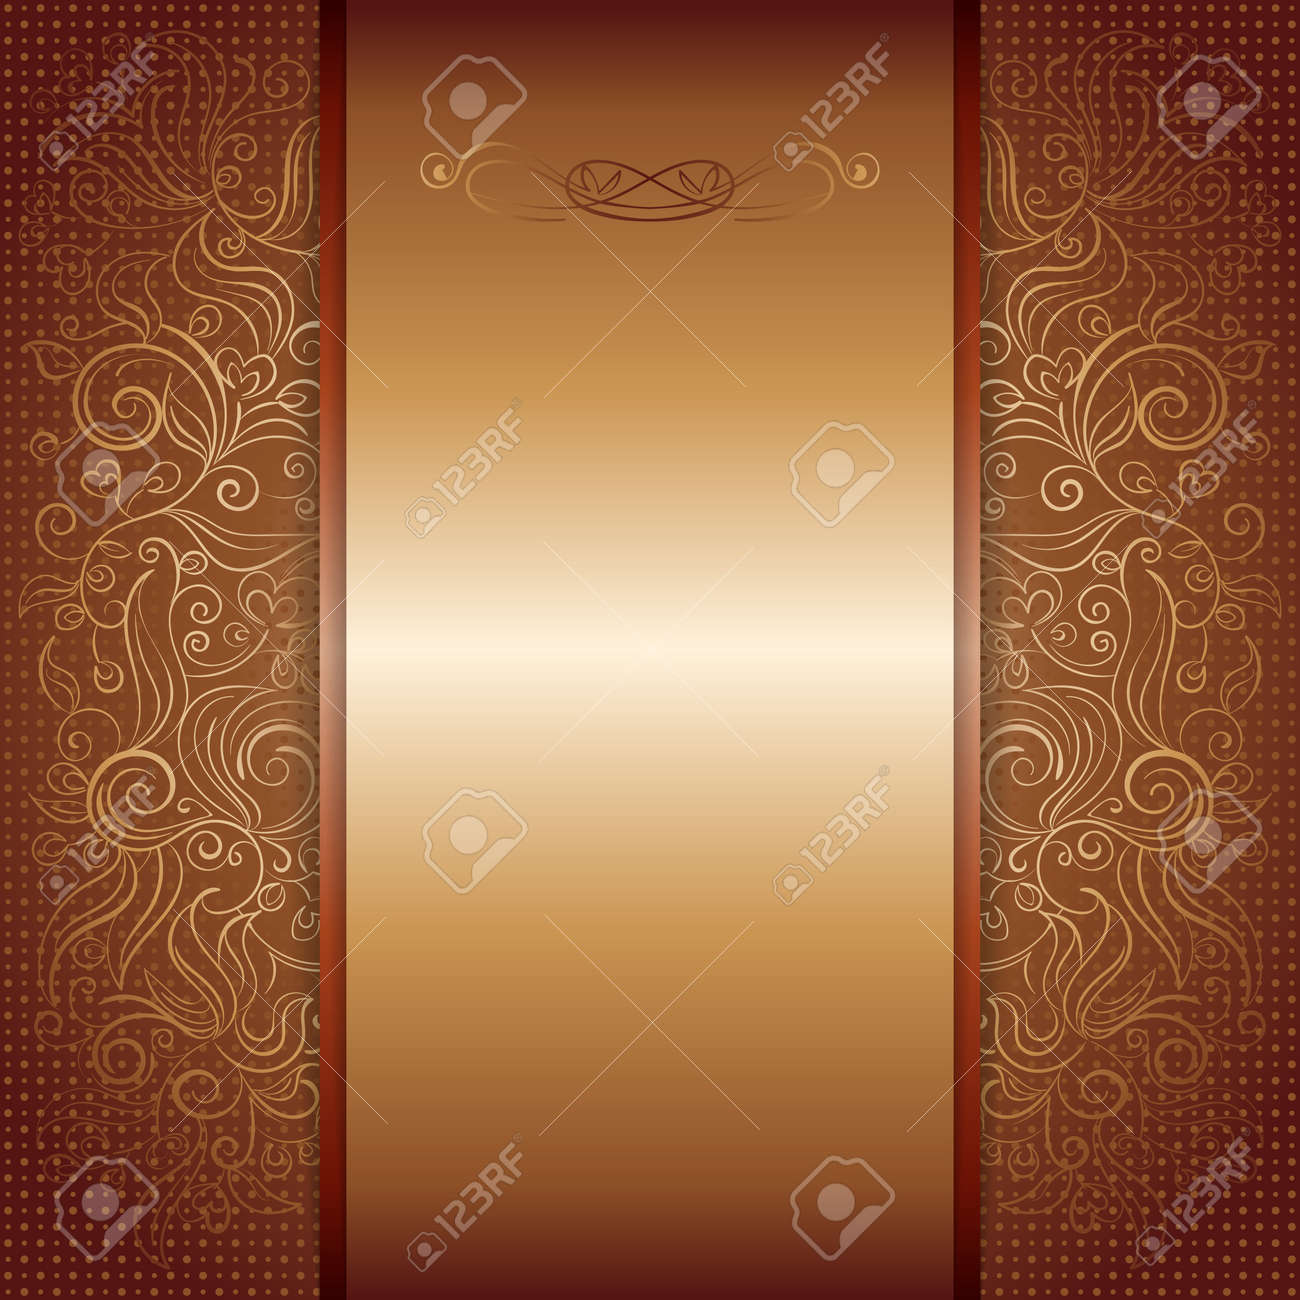 Brown With Gold Damask Pattern Royal Invitation Card Royalty Free